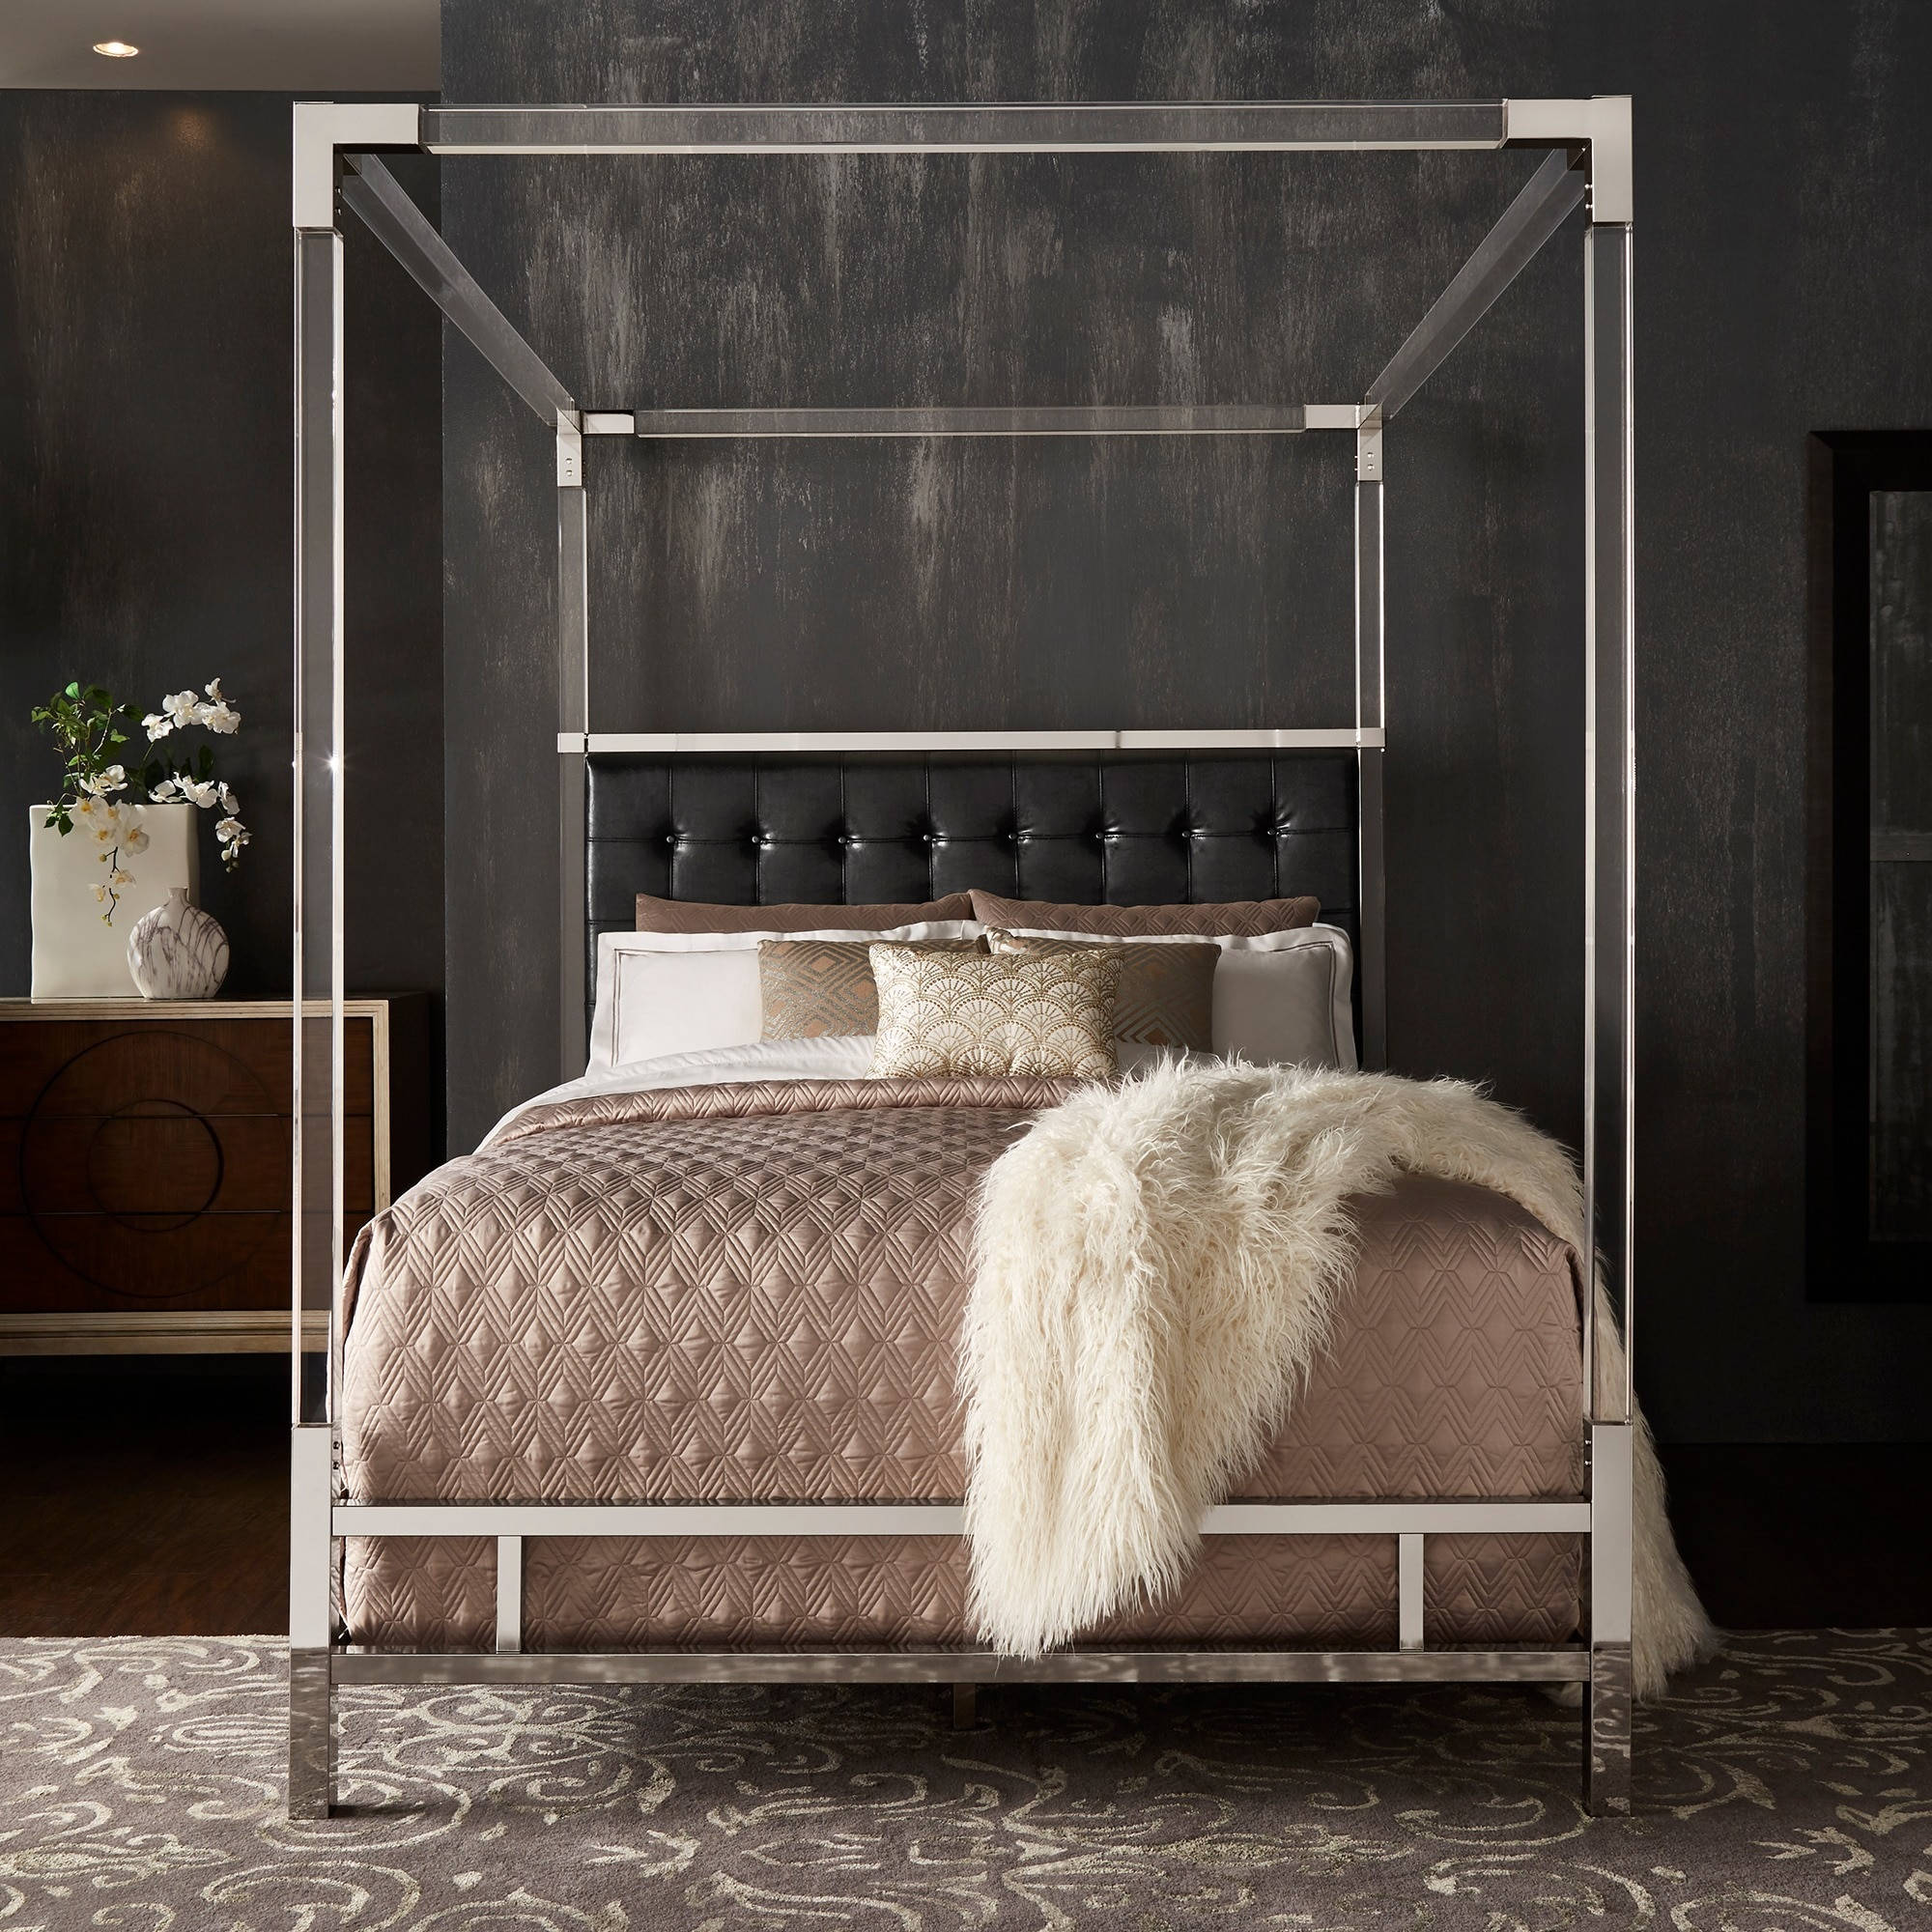 Merveilleux Shop Reid Acrylic And Chrome Canopy Bed With Tufted Headboard By INSPIRE Q  Bold   On Sale   Free Shipping Today   Overstock.com   19448217